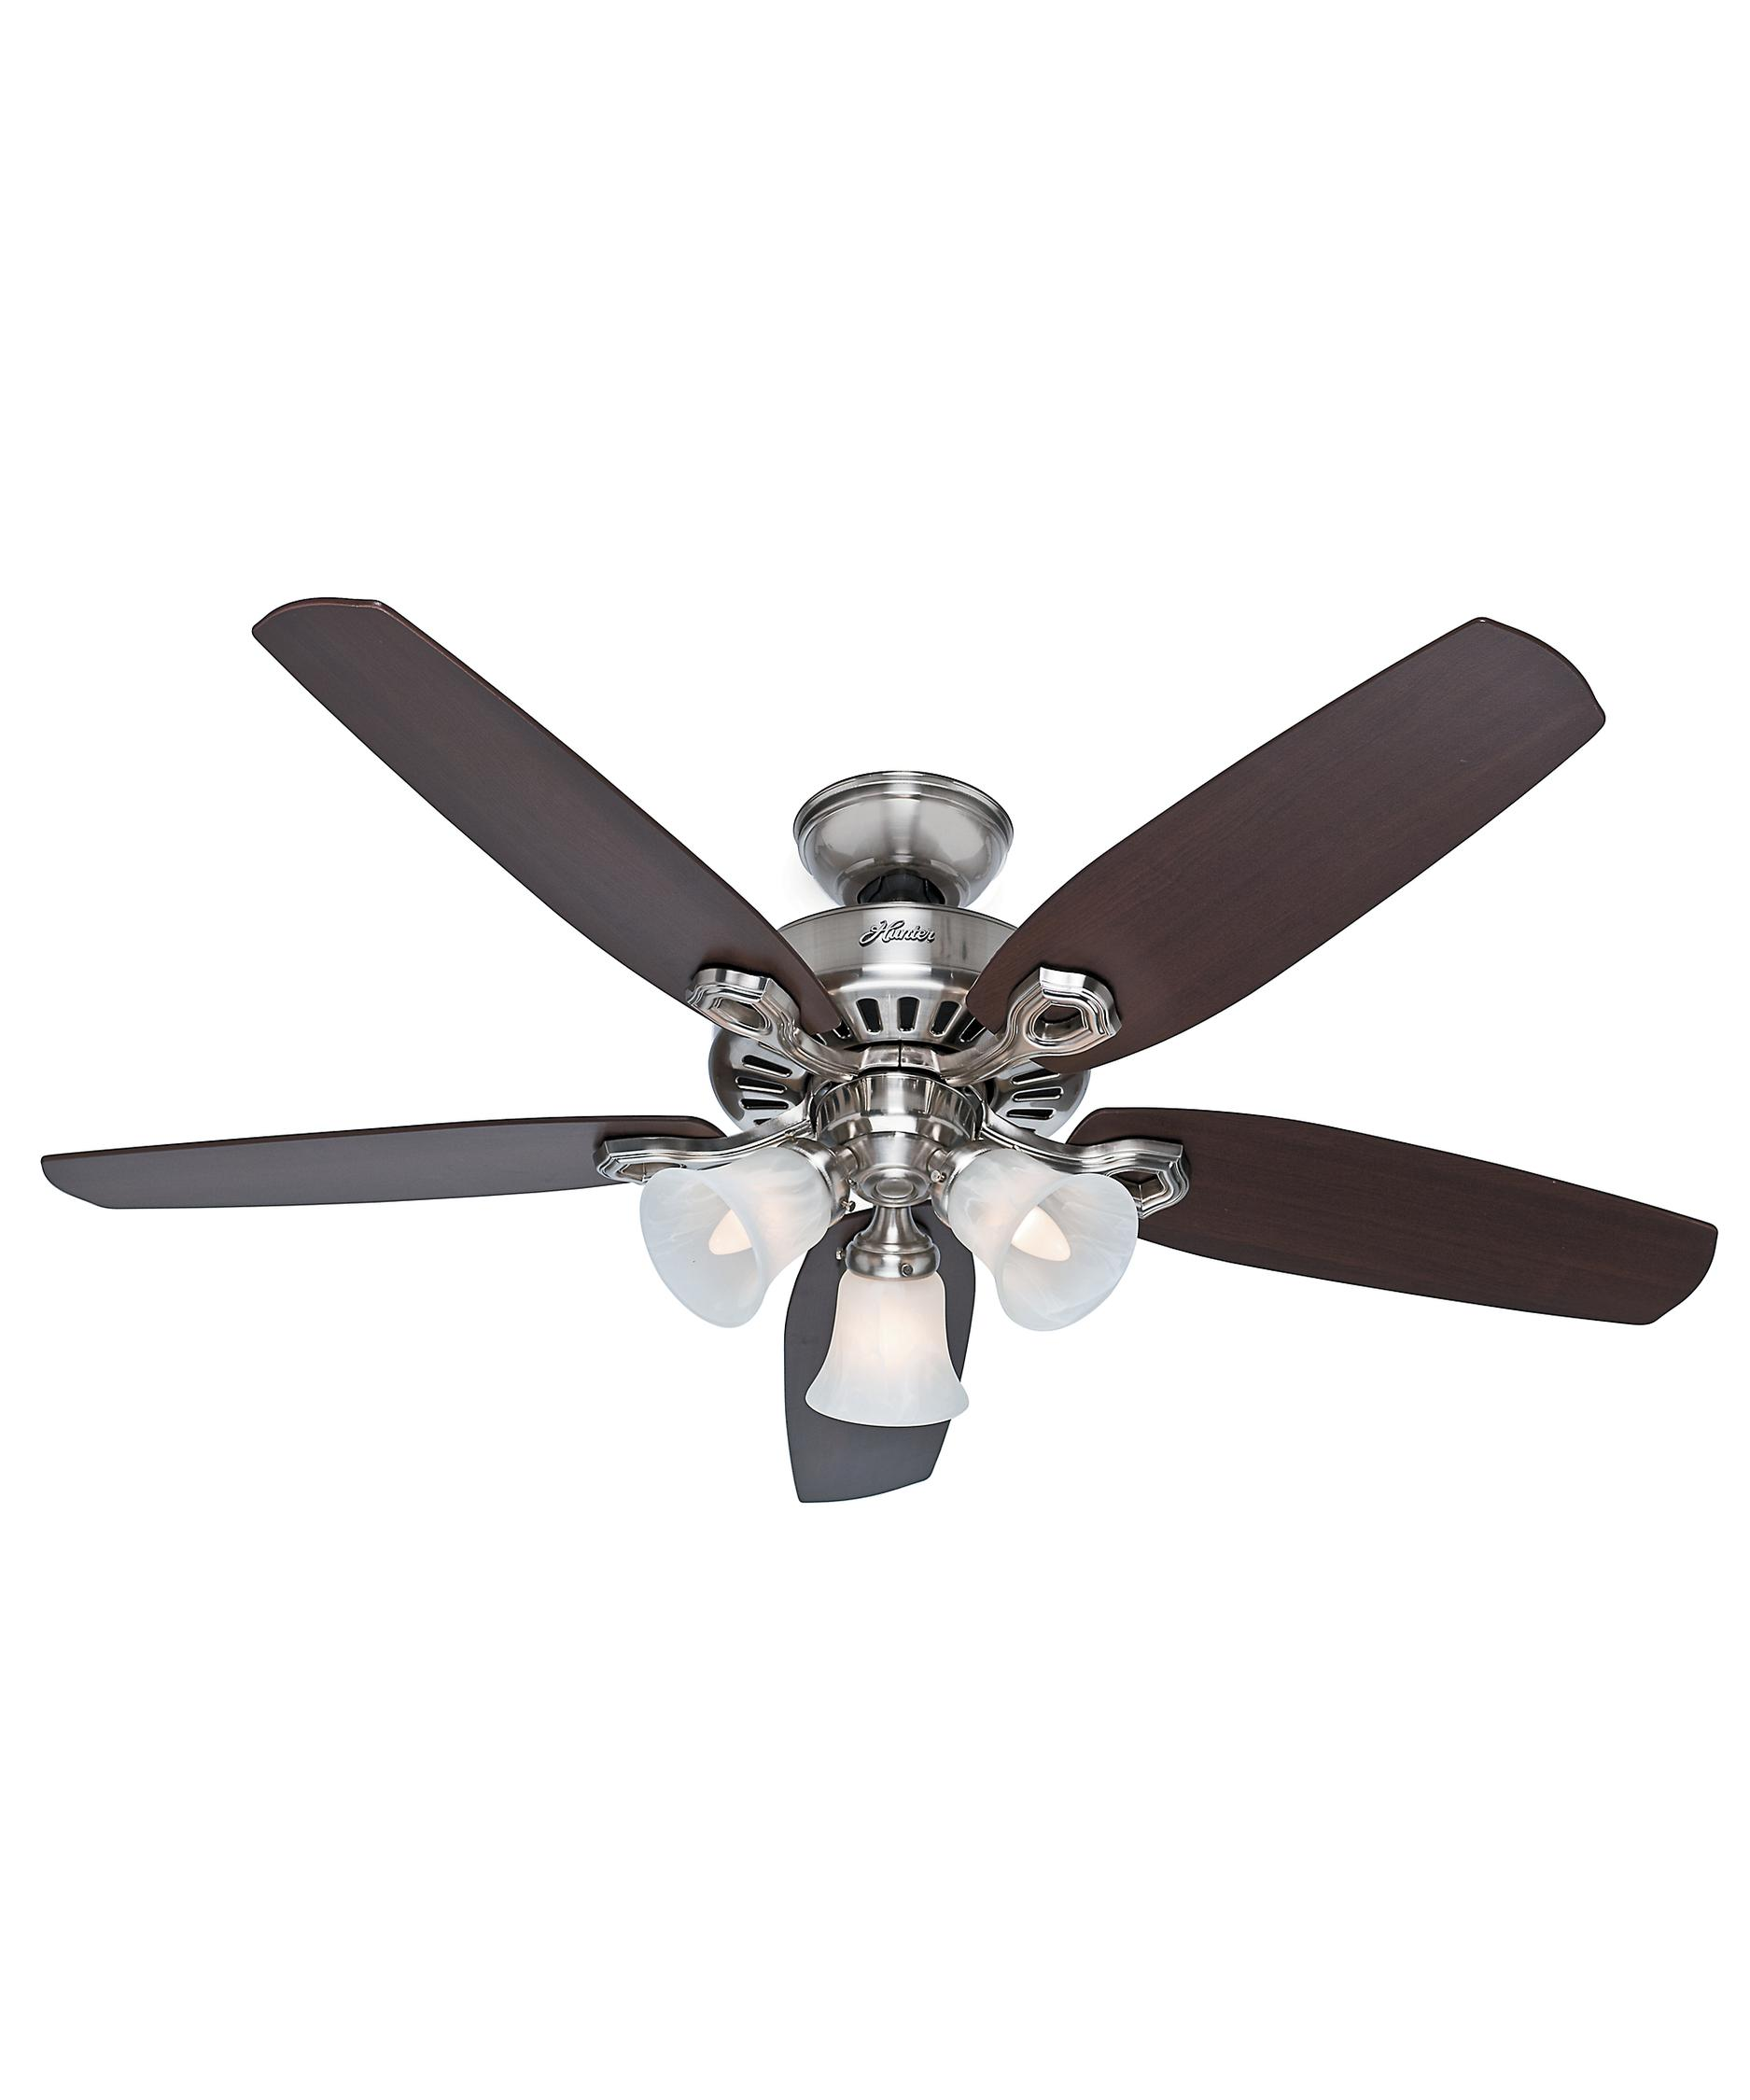 Murray Feiss Ceiling Fan Light Kit: Hunter Fan Builder Plus 52 Inch Ceiling Fan With Light Kit